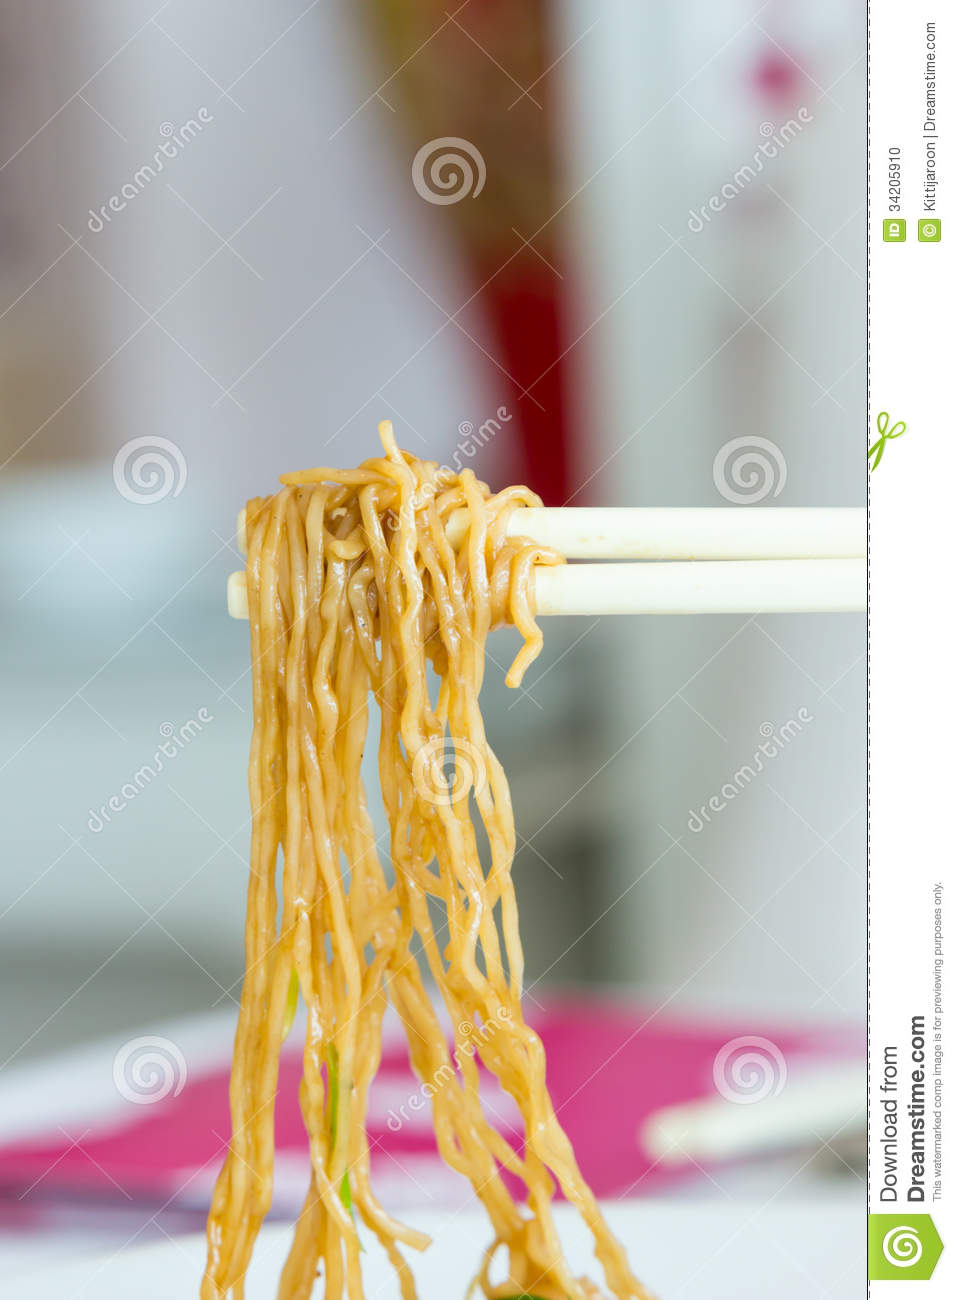 Yellow Noodles With Chopstick Holding Stock Photo   Image  34205910